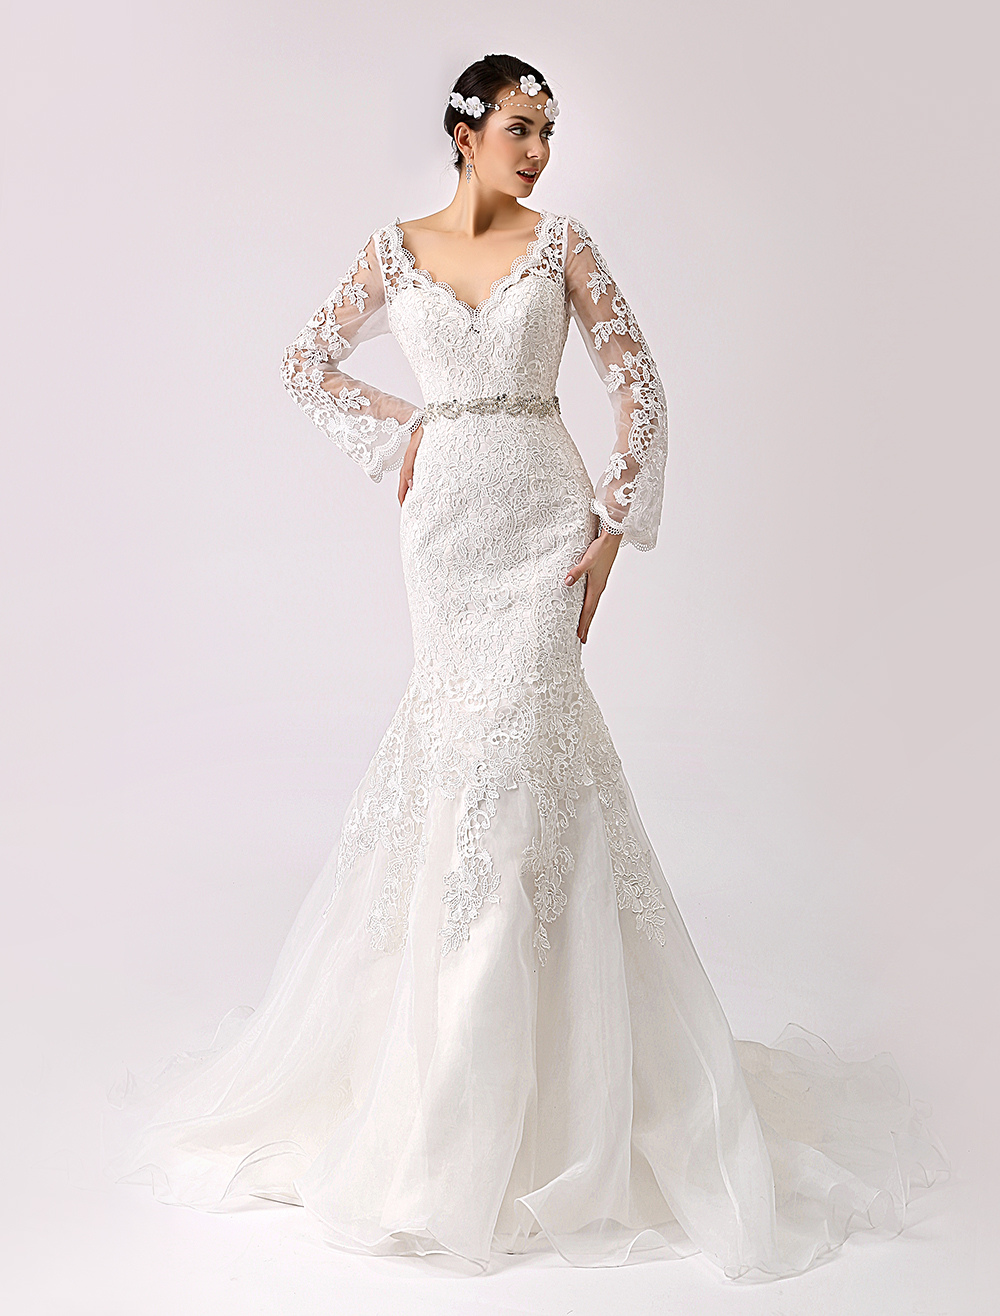 2018 Vintage Inspired Trumpet Lace Wedding Gown with Cutout Back Milanoo